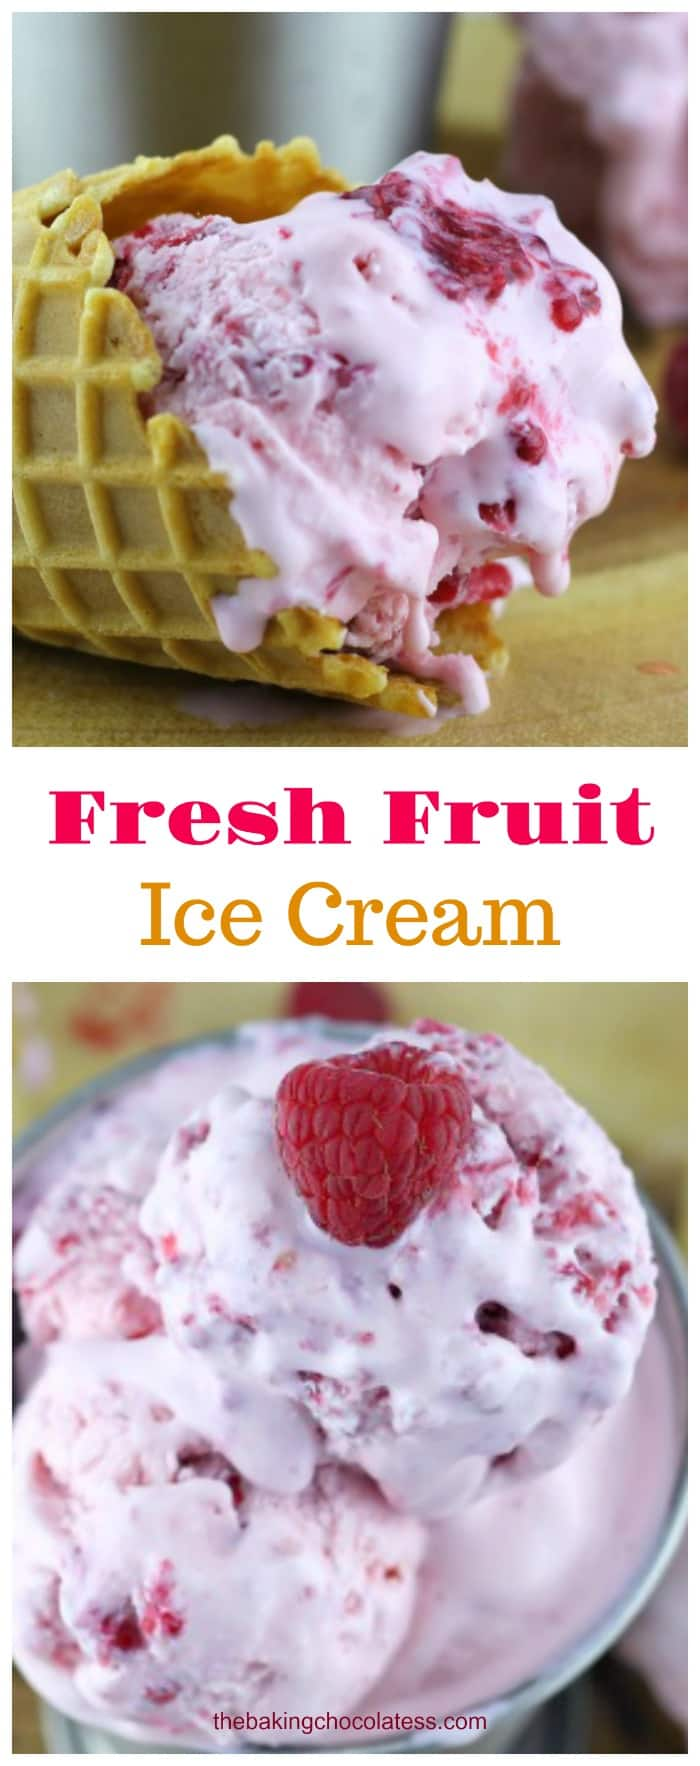 Fresh Fruit Ice Cream - Heavenly Raspberry flavor is bursting in this easy to make no-churn ice cream.  Perfect smooth and creamy summer raspberry frozen treat for everyone!